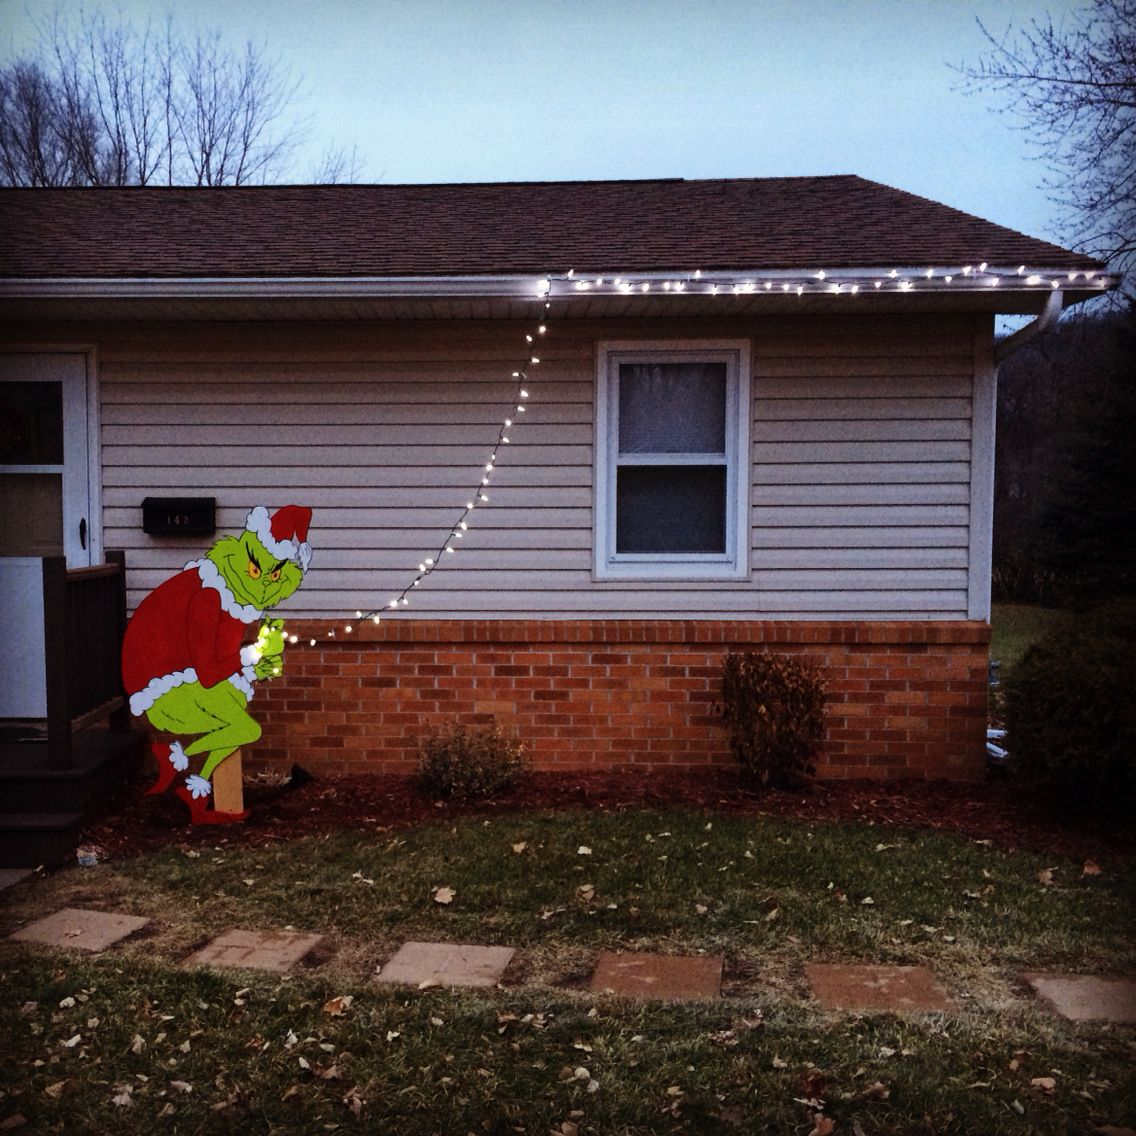 Grinch Steals The Lights Decorations Outdoor Christmas